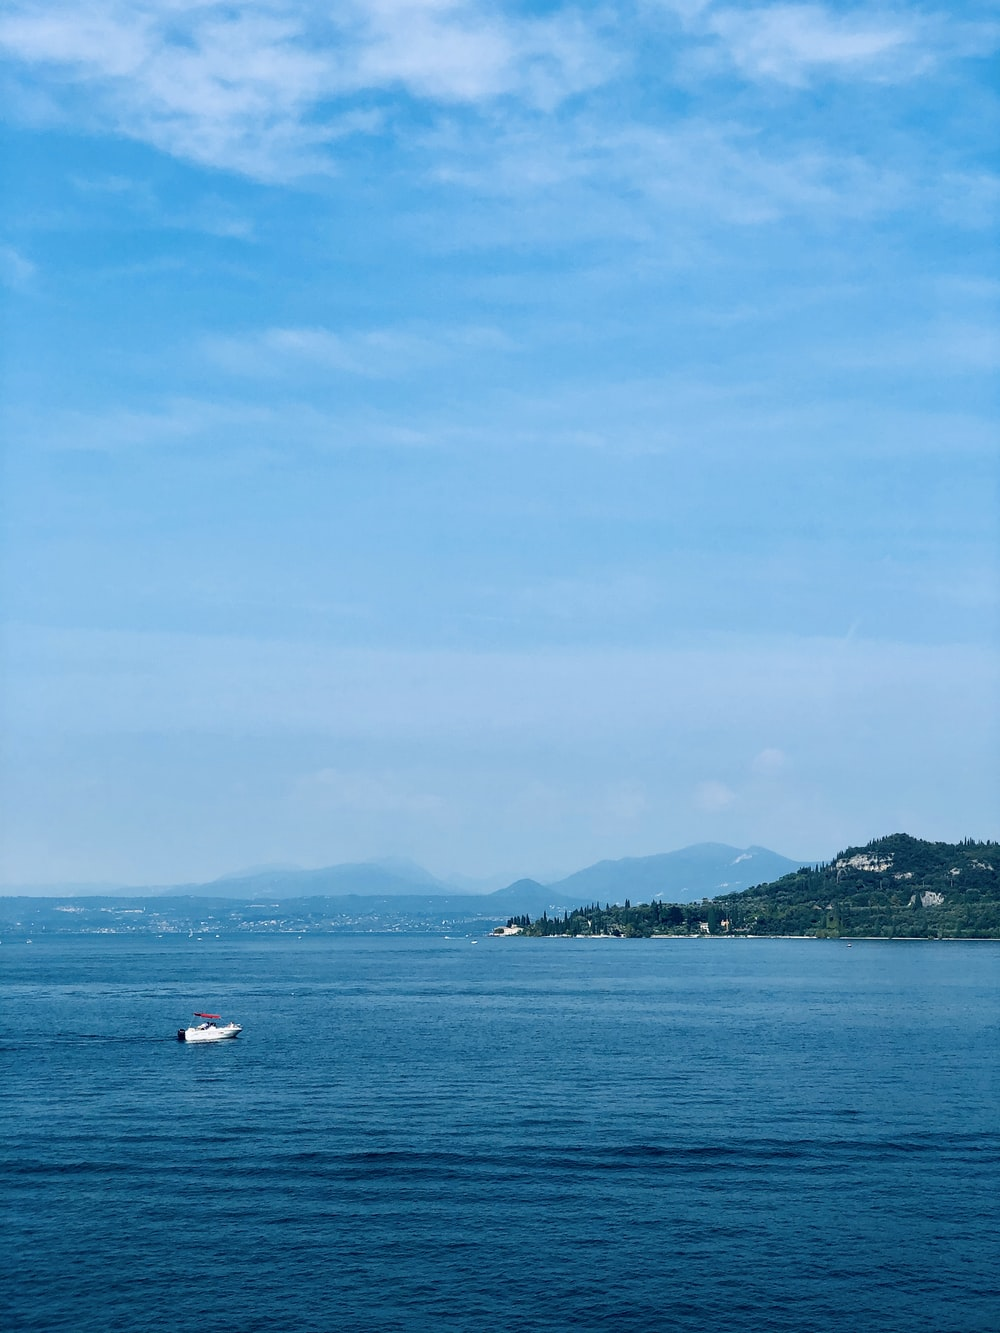 white boat on sea near green mountain under blue sky during daytime